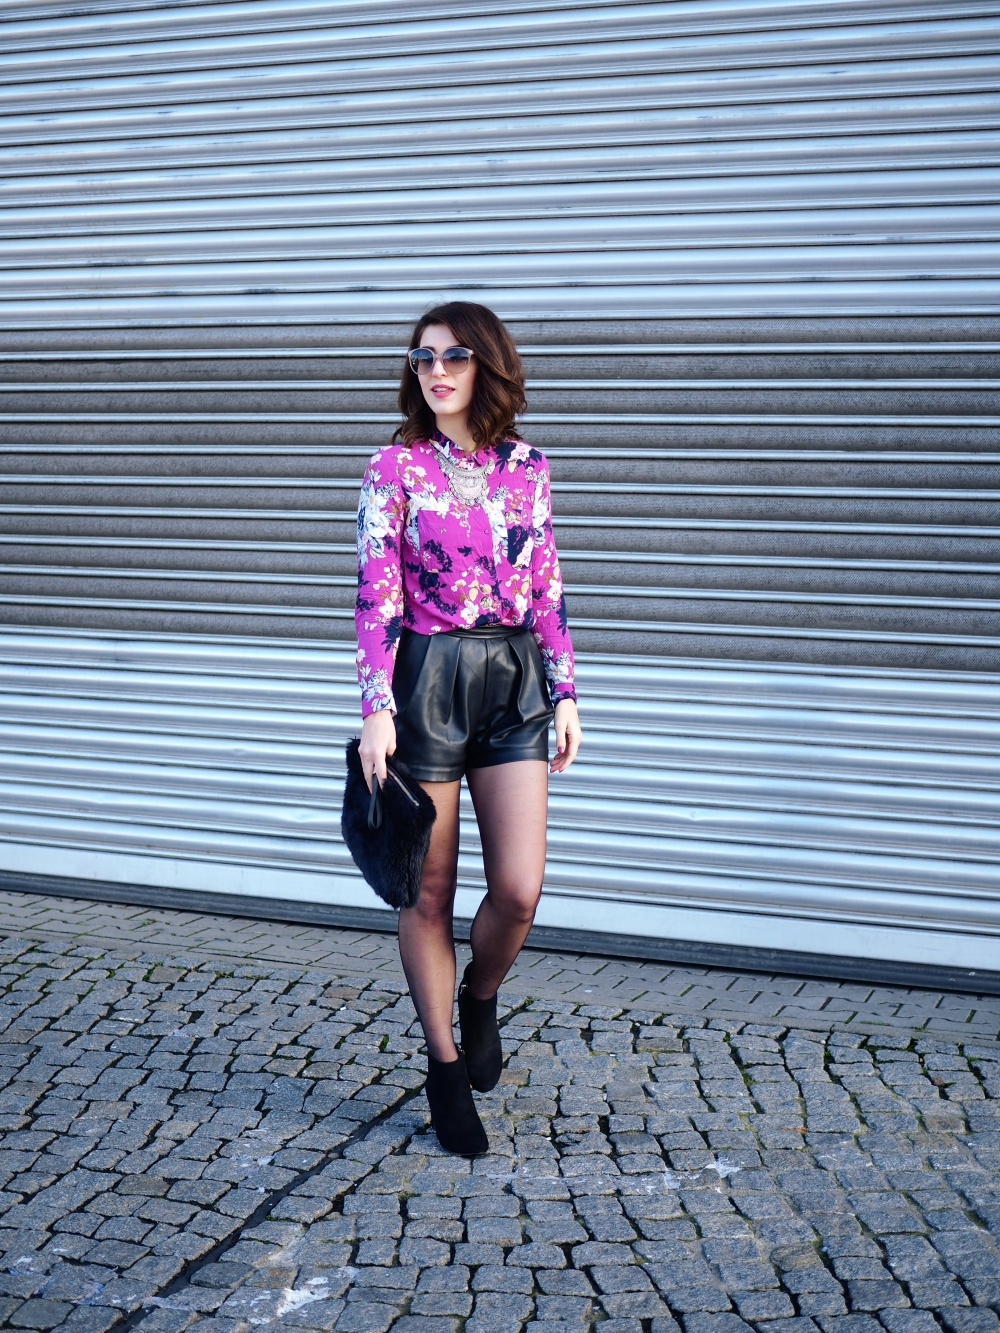 oasis floral shirt leather shorts party weekend outfit streetstyle look blog berlin samieze fashion inspiration trend